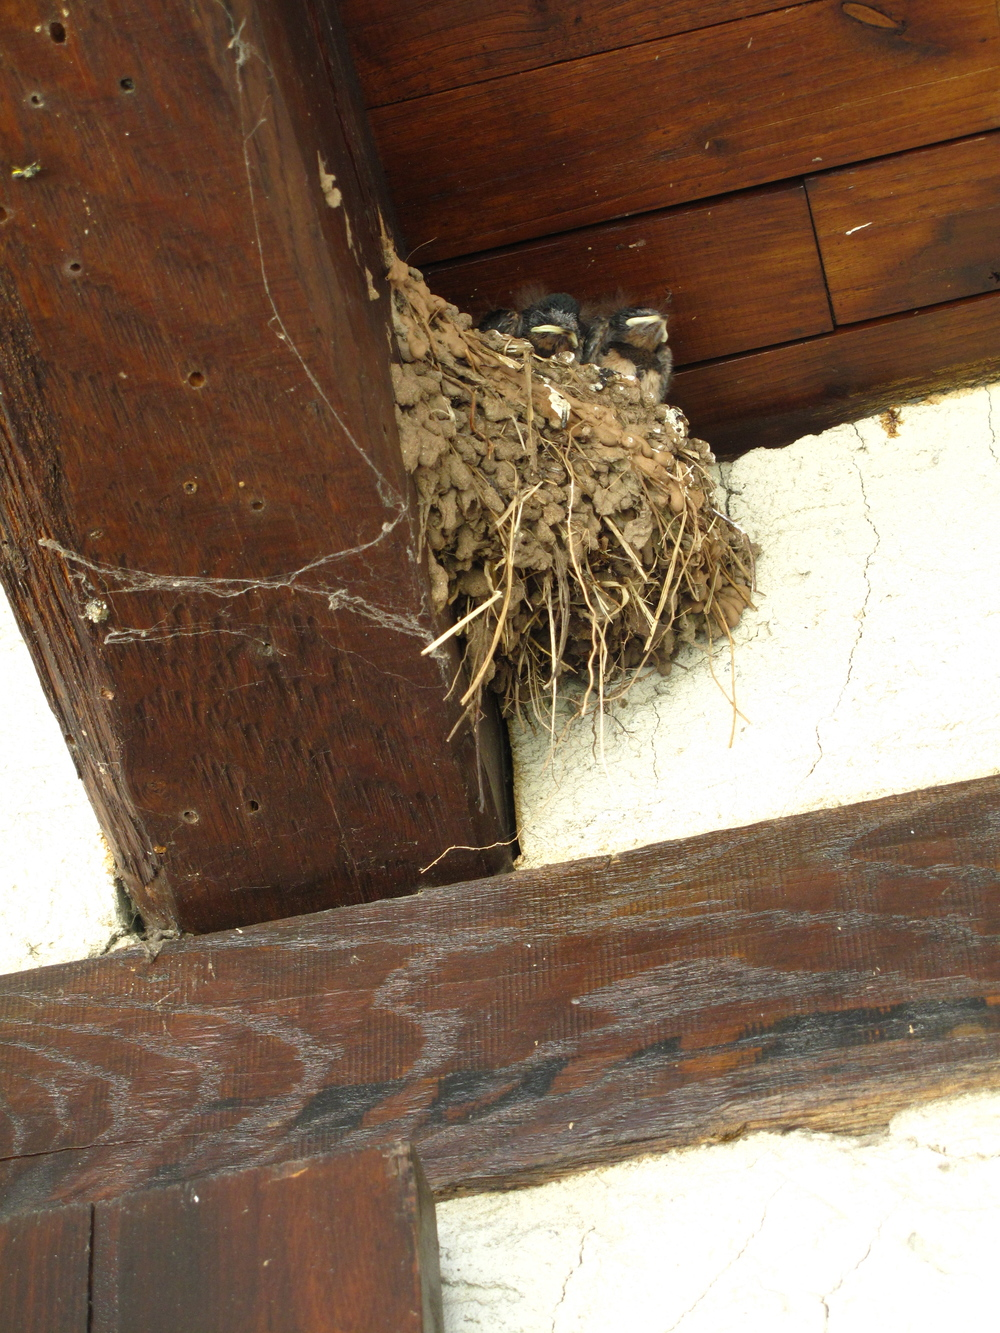 Baby swallow birds in a nest.